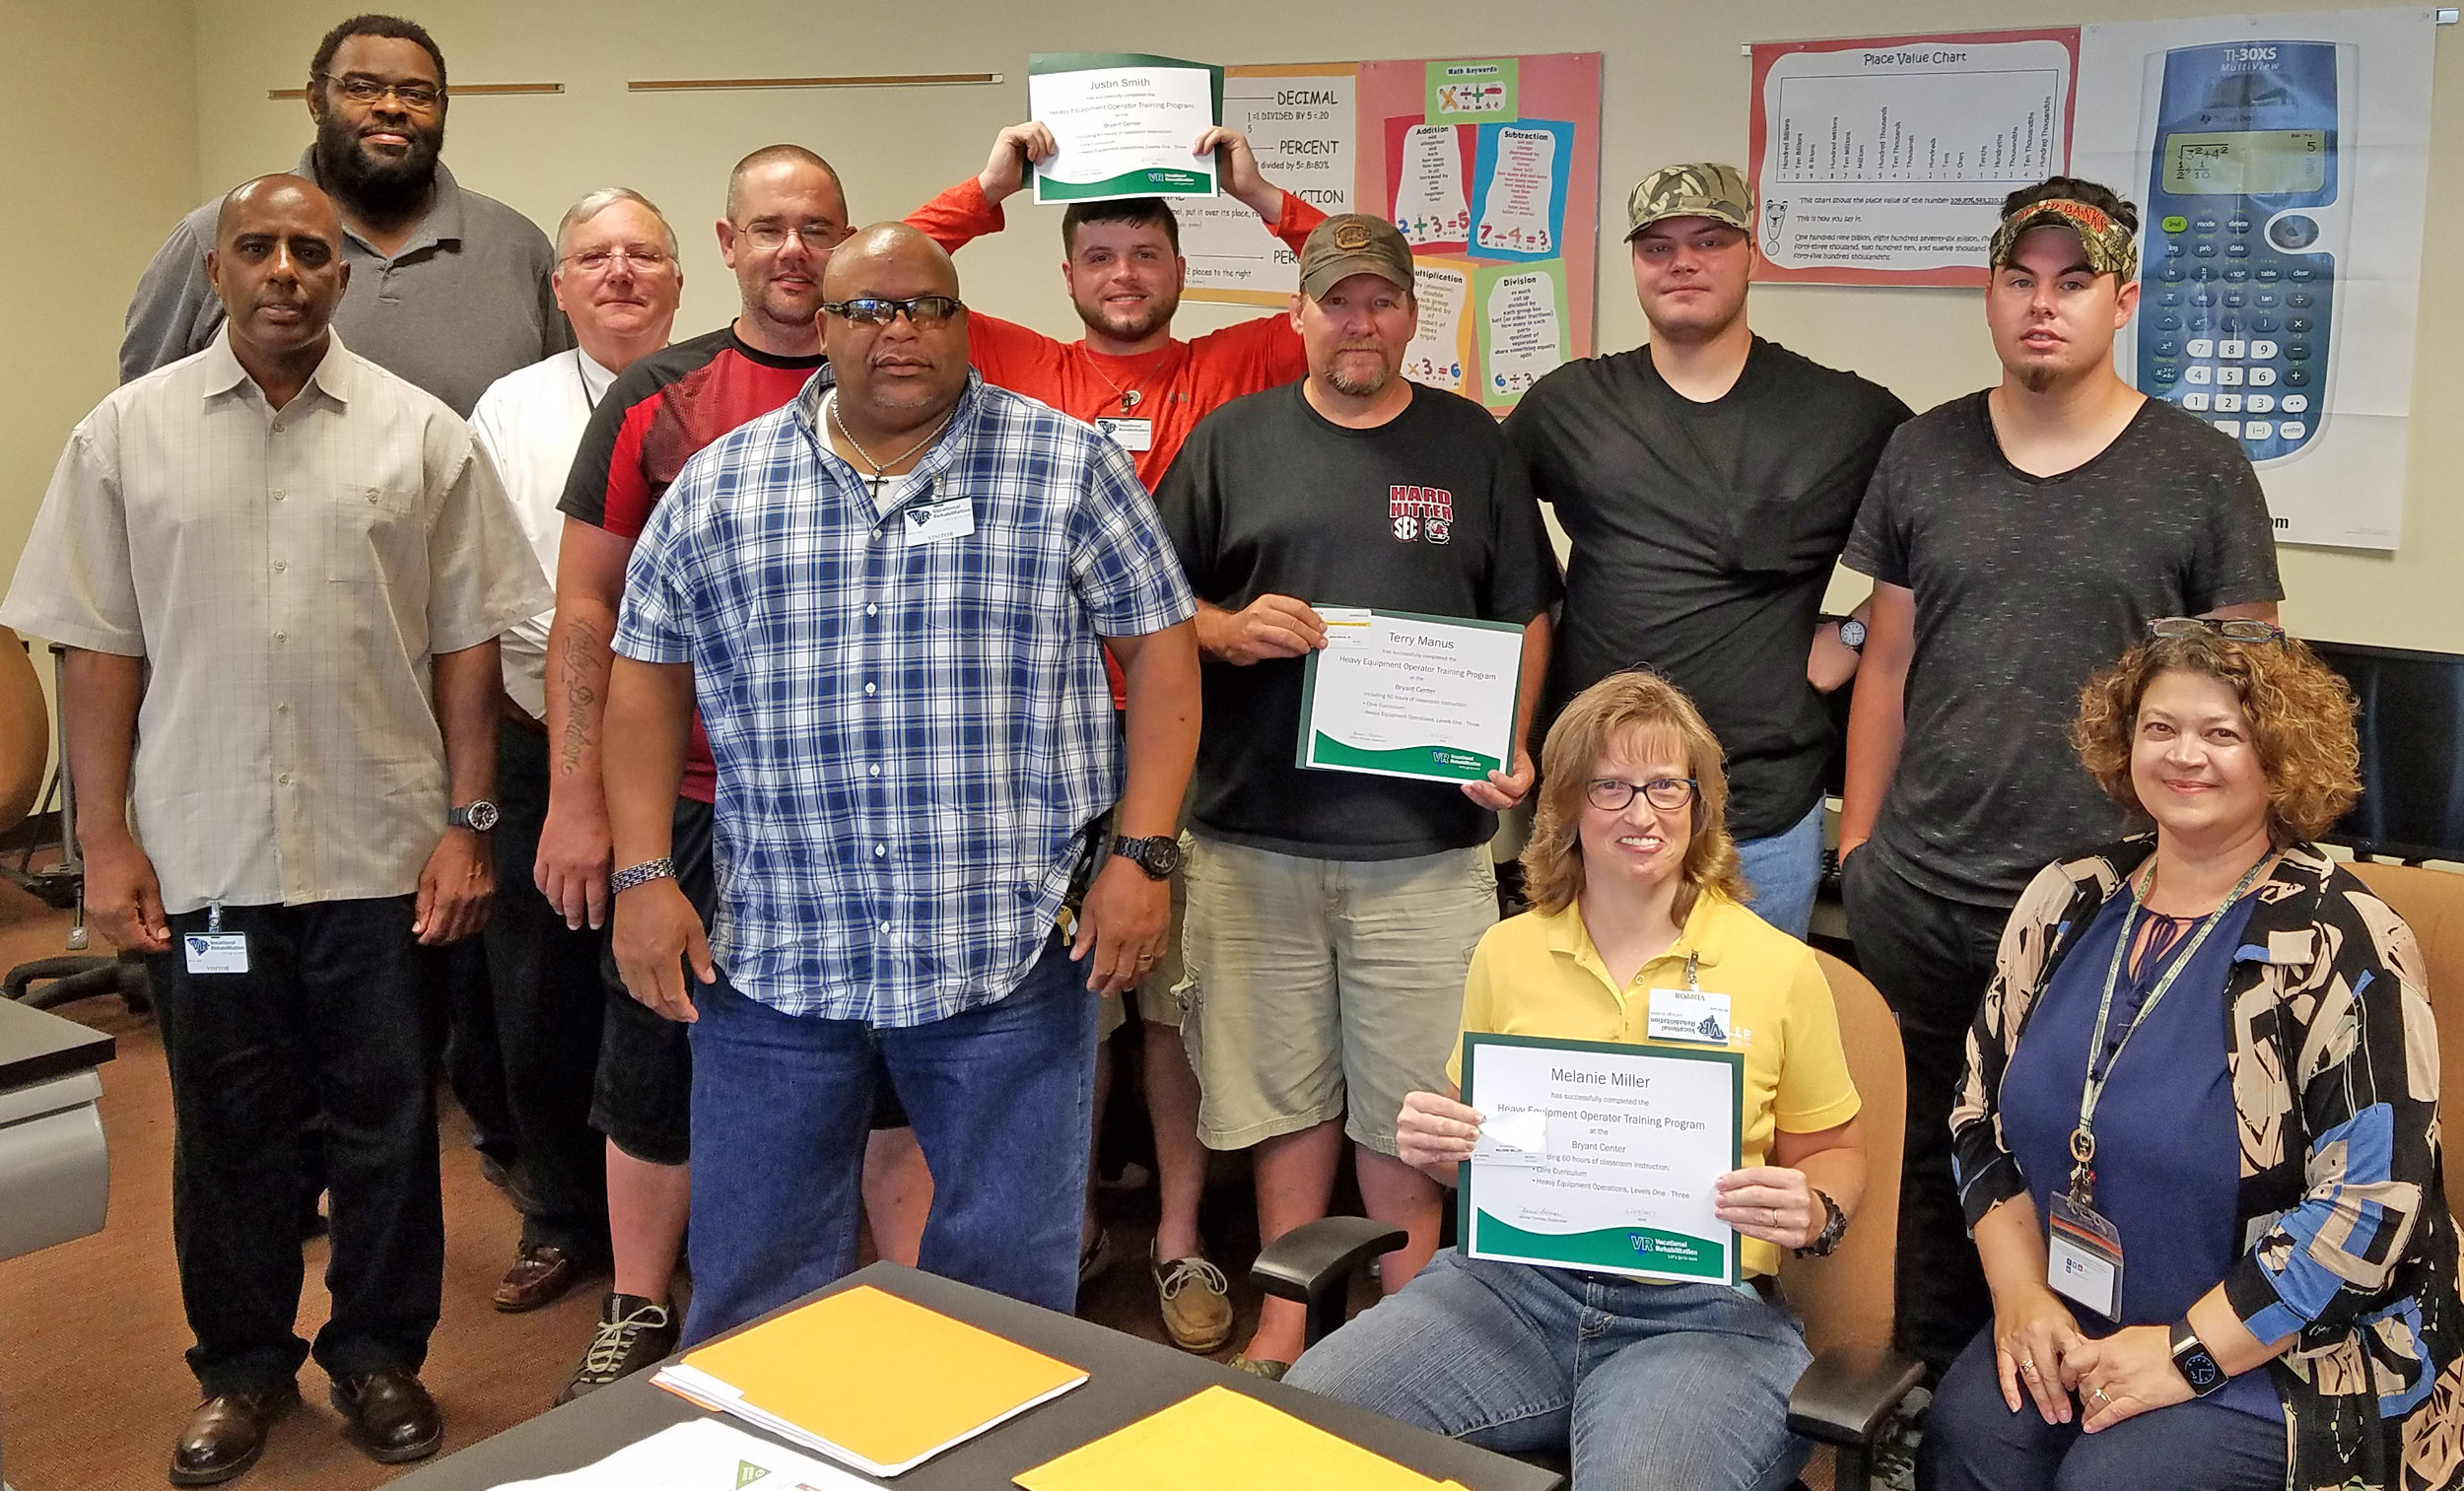 Left to right: Clients Darnell Carter and Jason Allgood; Tom McAbee, ACE/JPI; clients Paul Christoffersen and Terry Bradley; former clients Justin Smith and Terry Manus; clients Shawn Rose and Bryan Getsinger. Seated: Melanie Miller, former VR client; Jennie Thomas, Area Administrator.